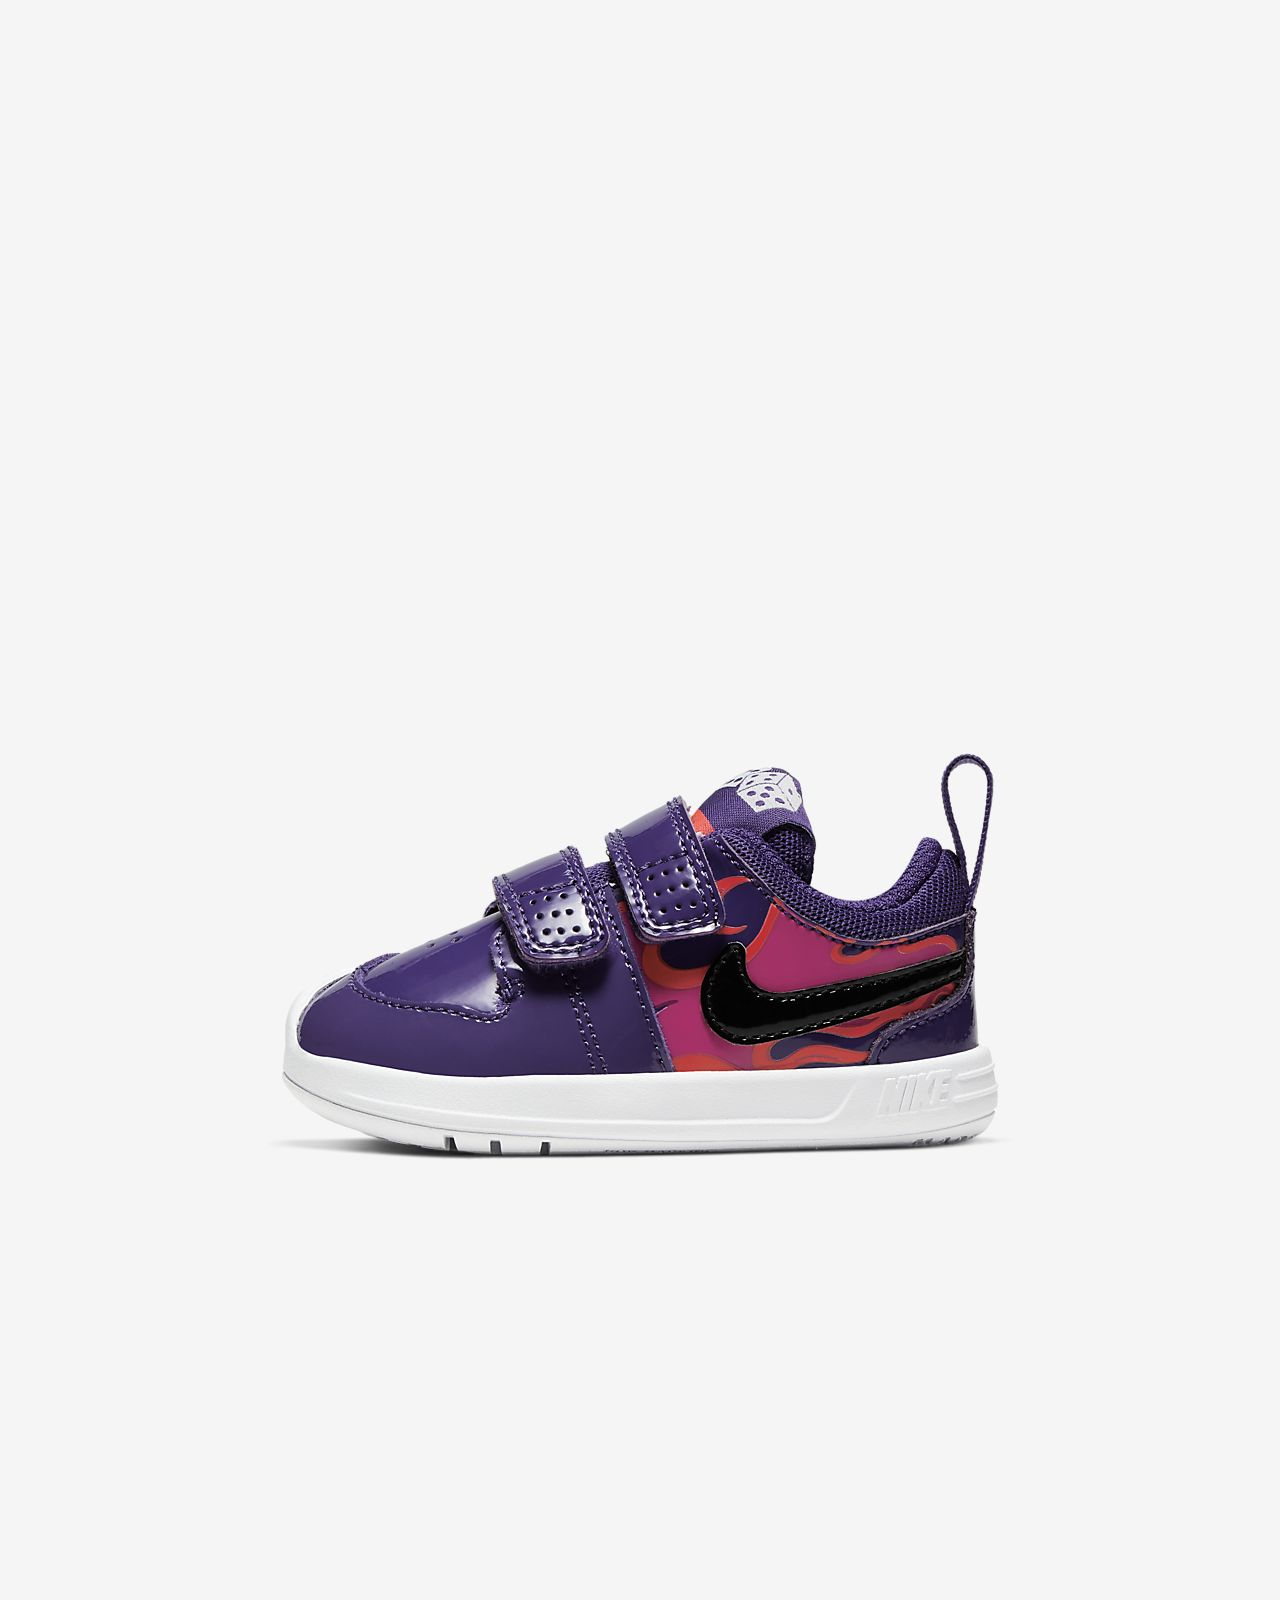 Nike Pico 5 Auto Baby and Toddler Shoe